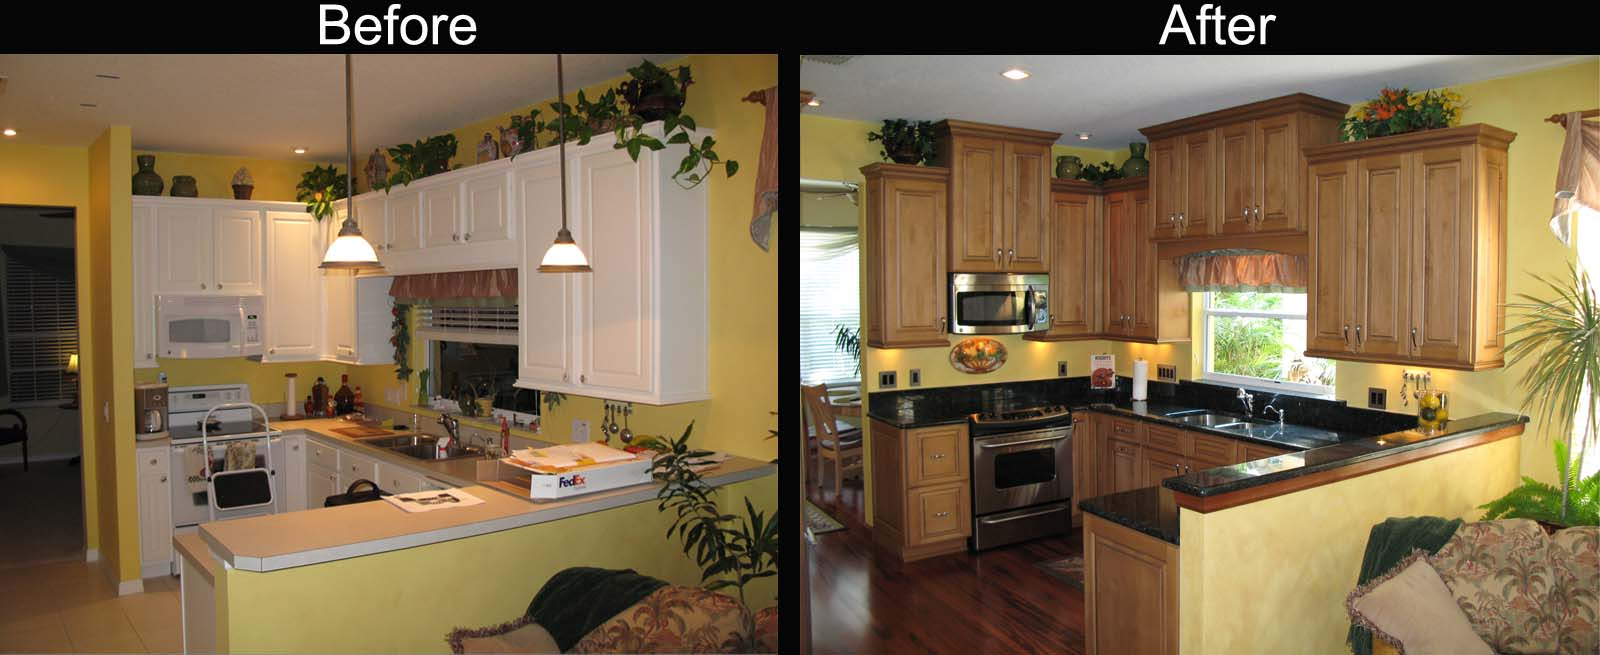 Kitchen decor kitchen remodel before and after for Kitchen and remodeling